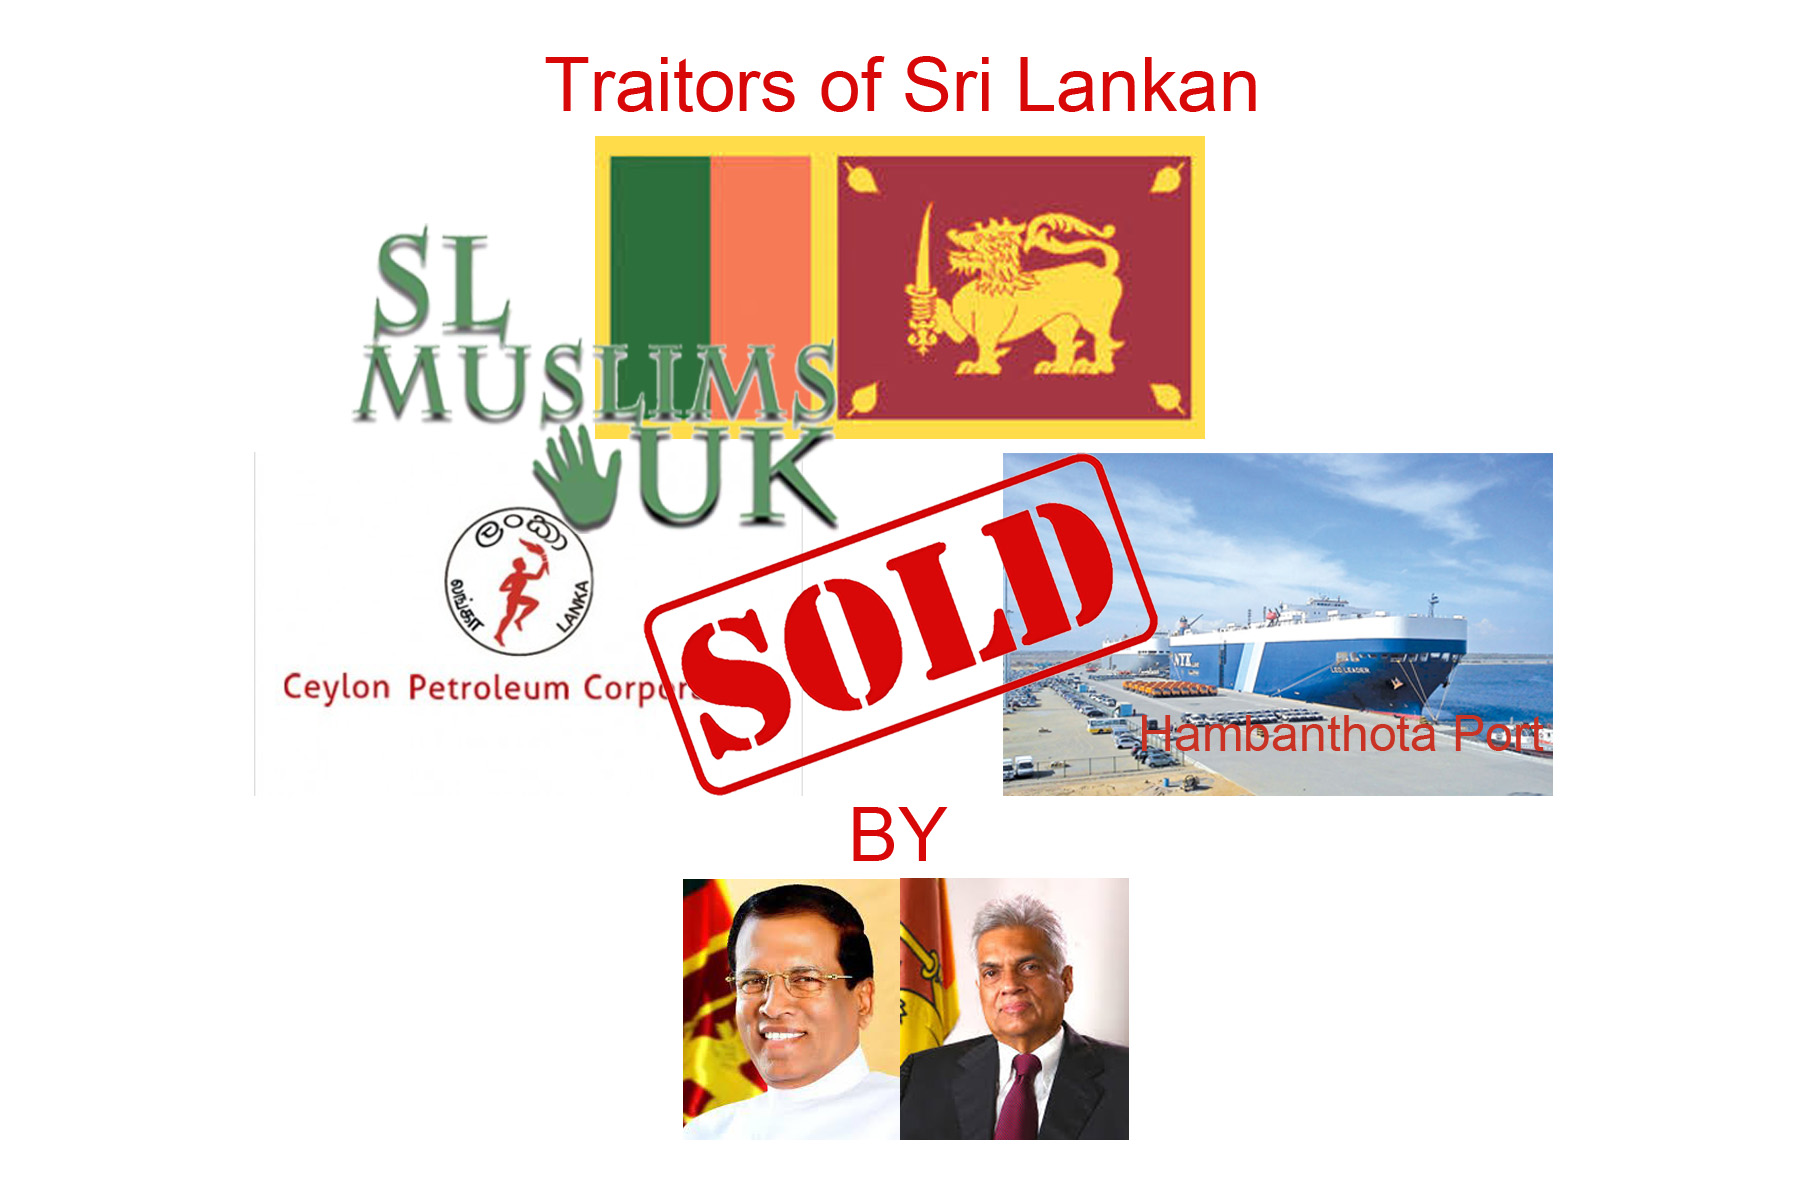 Traitors of Sri Lankan